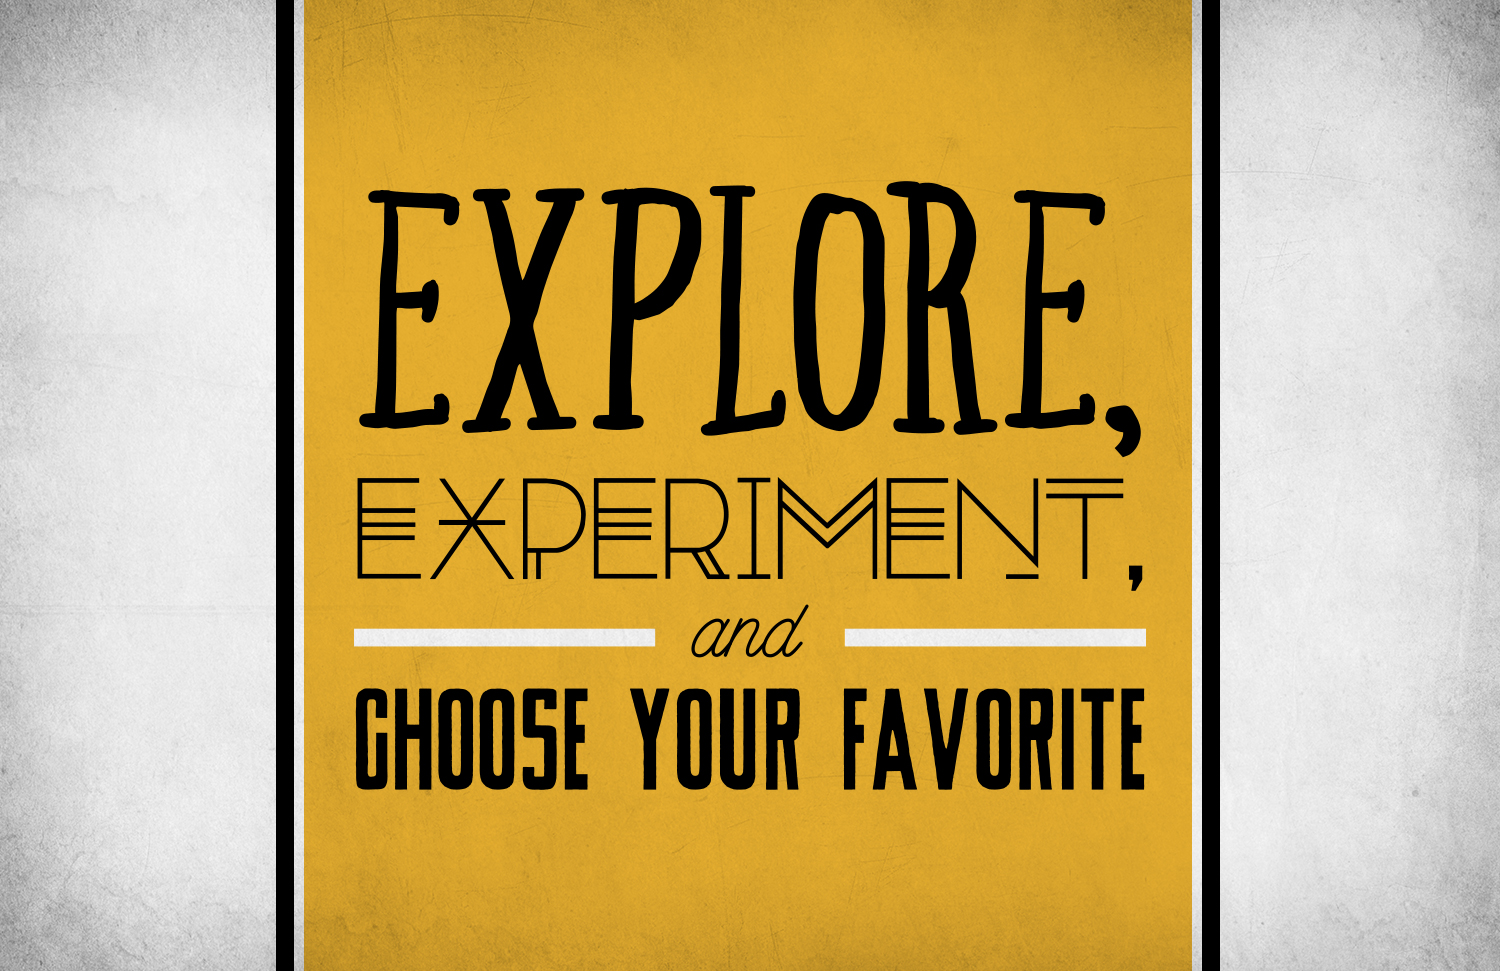 explore-experiement-and-choose-your-favorite